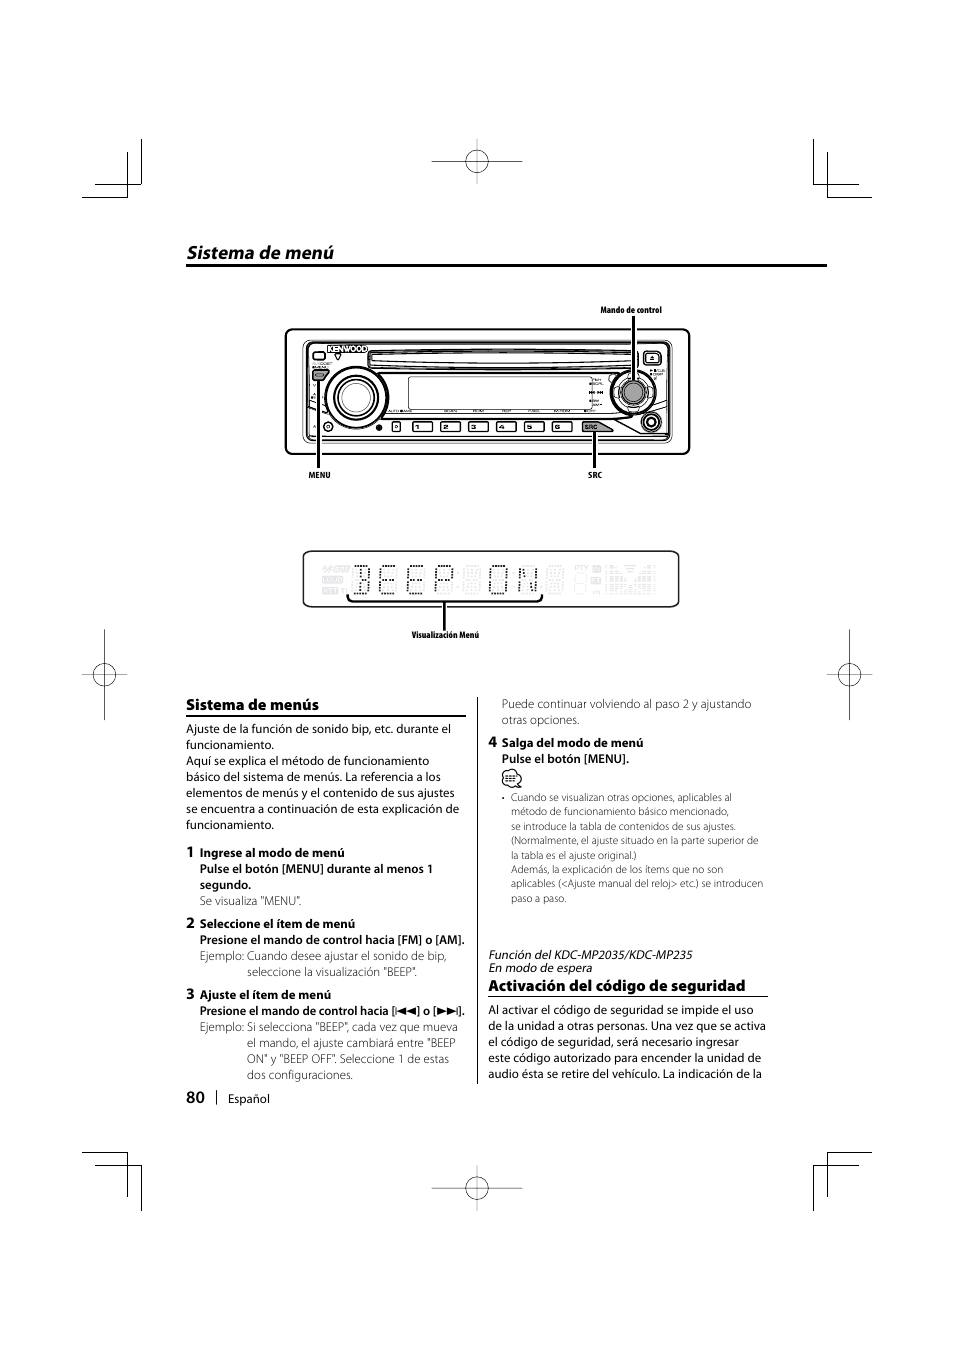 sistema de men kenwood kdc mp205 user manual page 80 96 rh manualsdir com Kenwood KDC MP205 Aux Kenwood KDC MP205 Manual